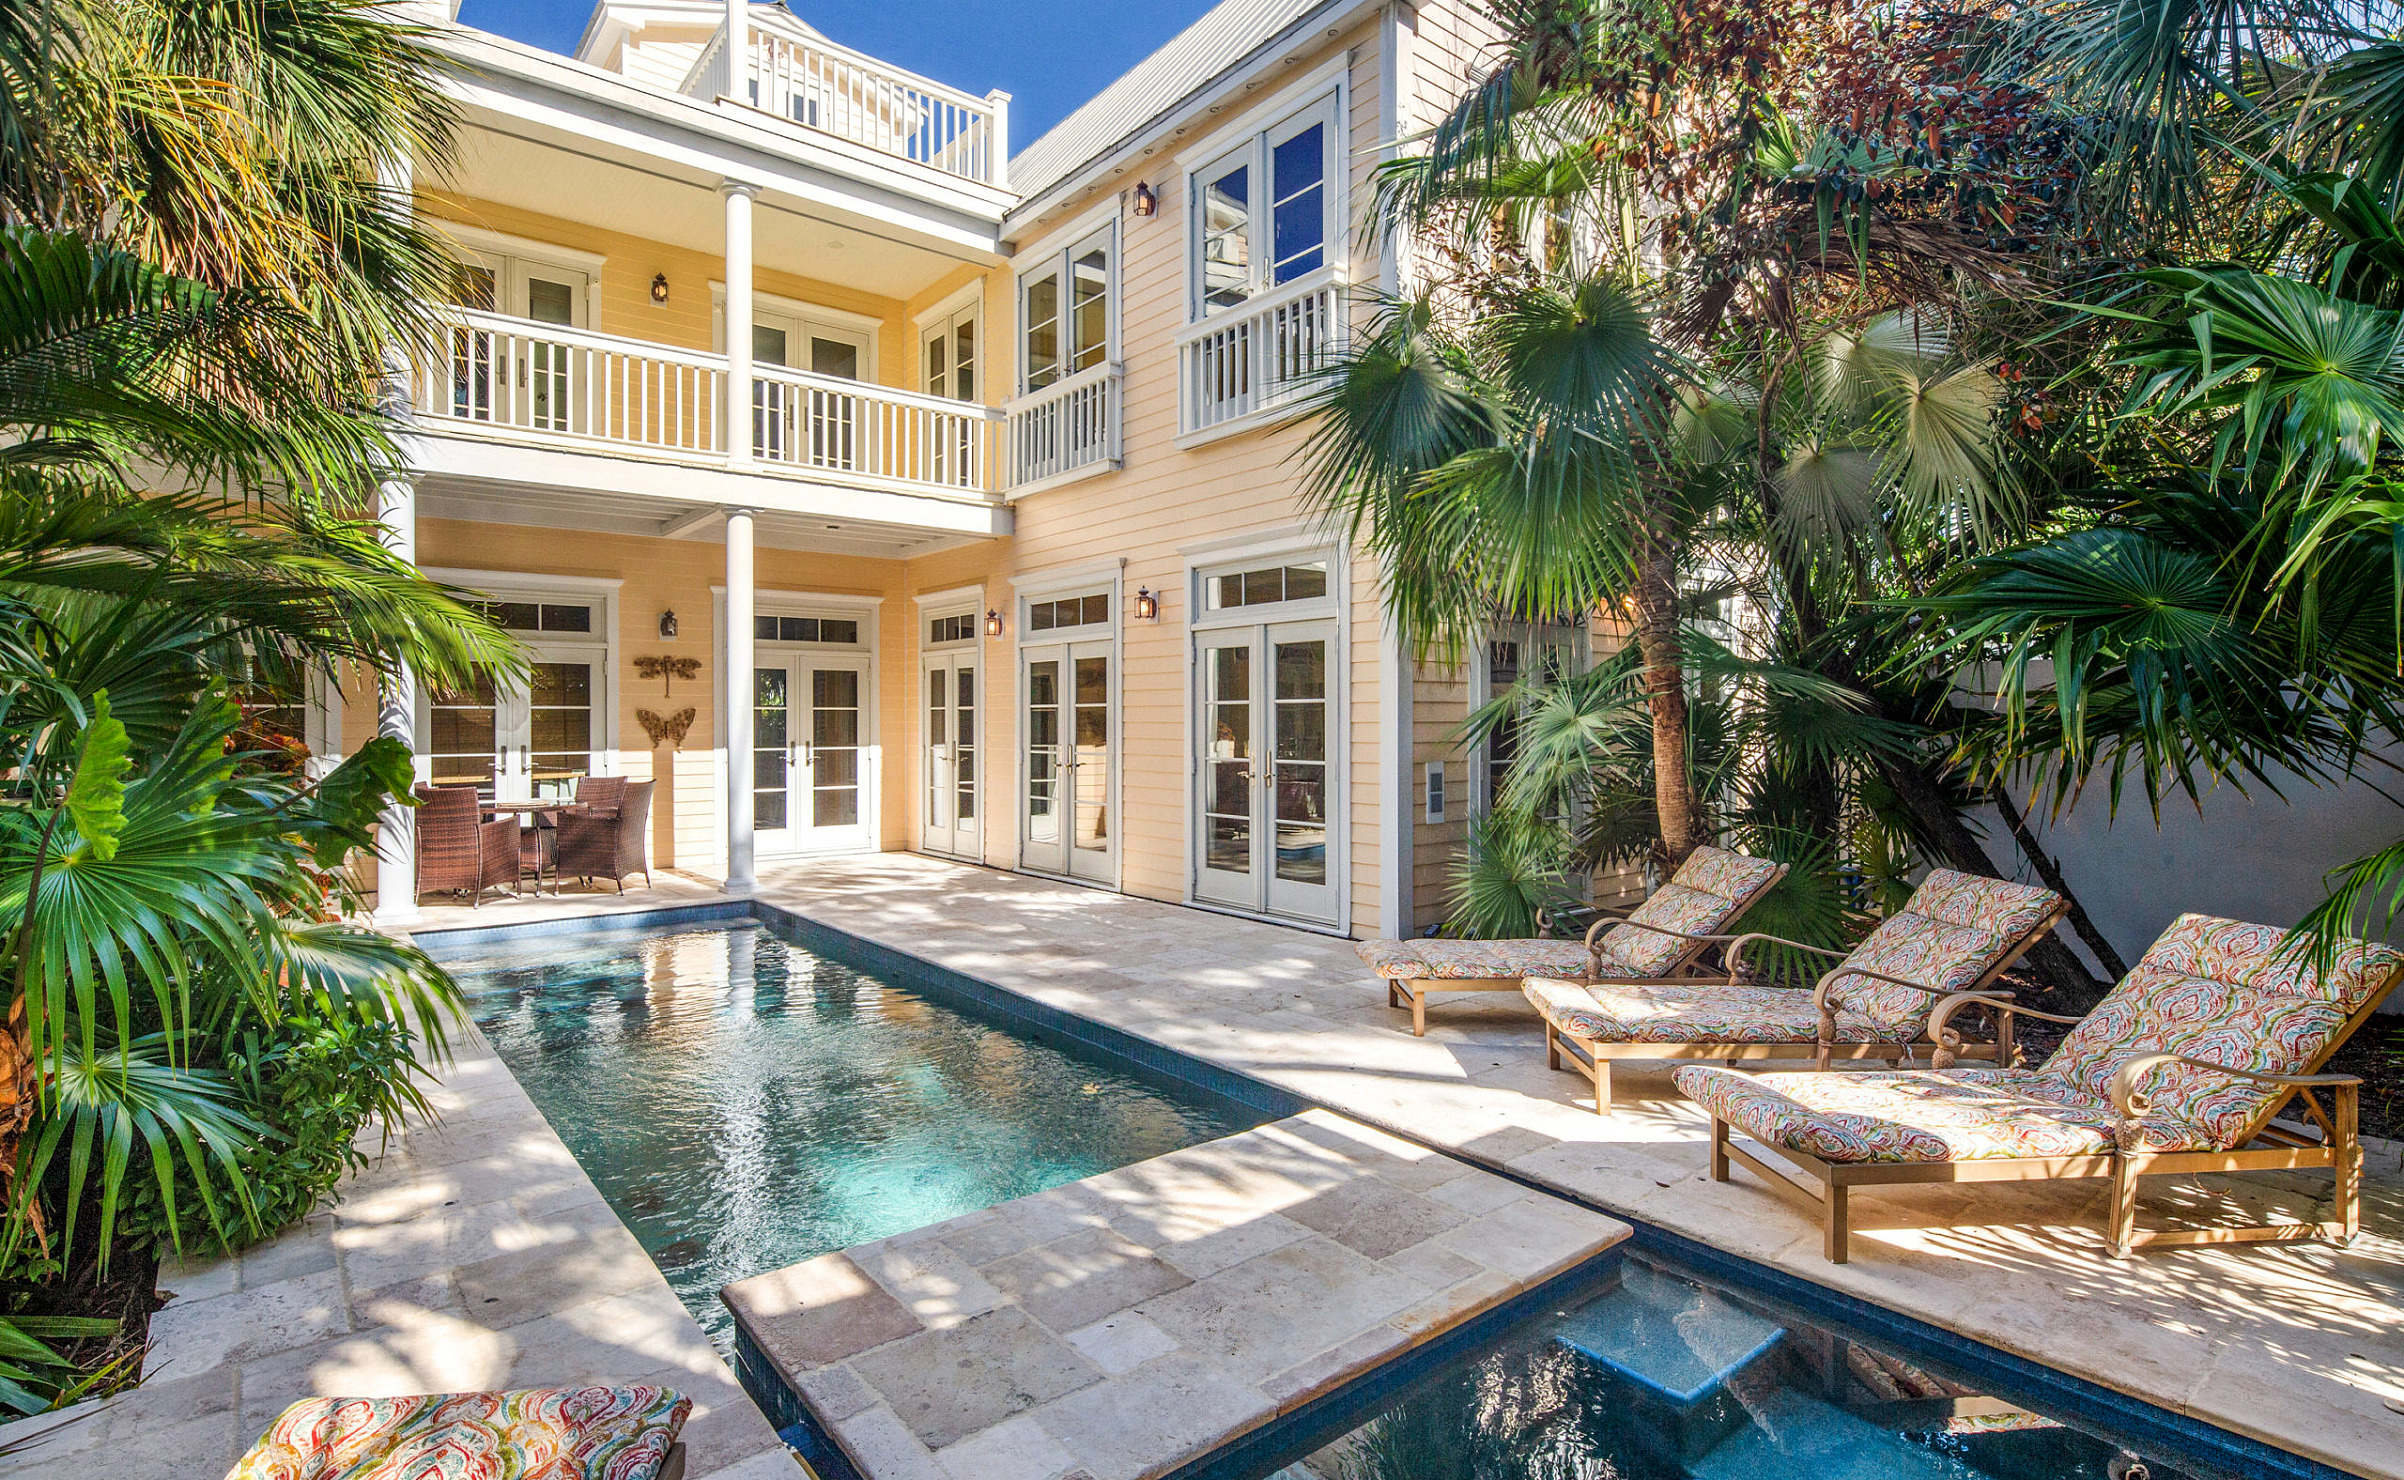 Key West Homes for Sale: 722 Ashe Street